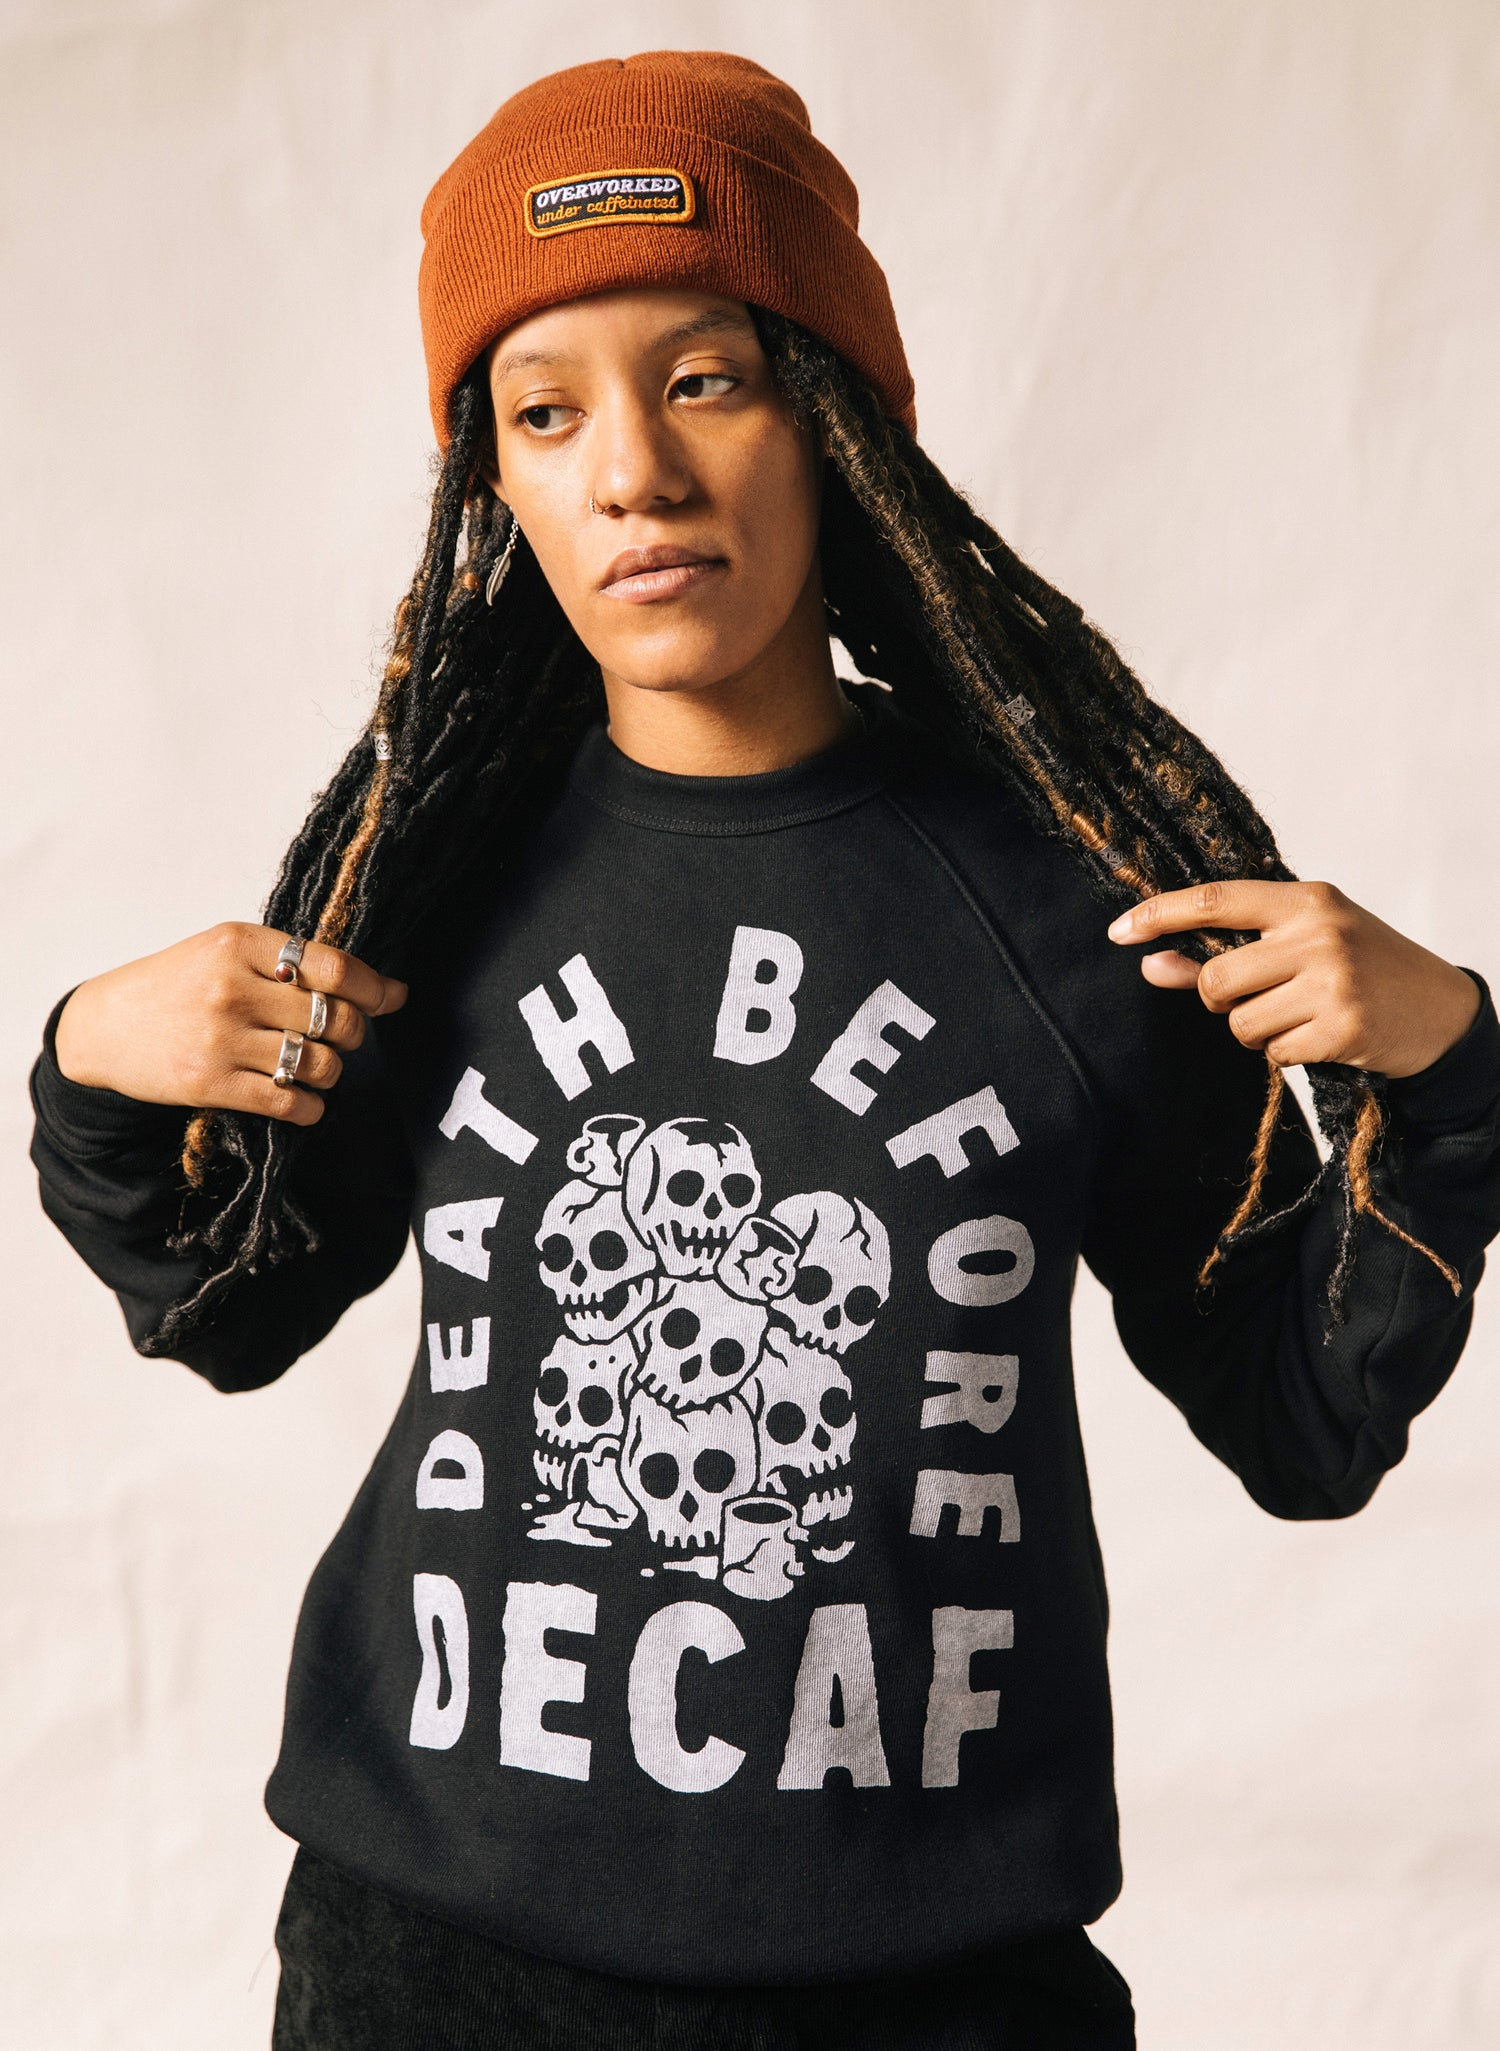 Death Before Decaf Coffee Black Pullover Crewneck Sweatshirt Skulls Catacomb Coffee Mugs